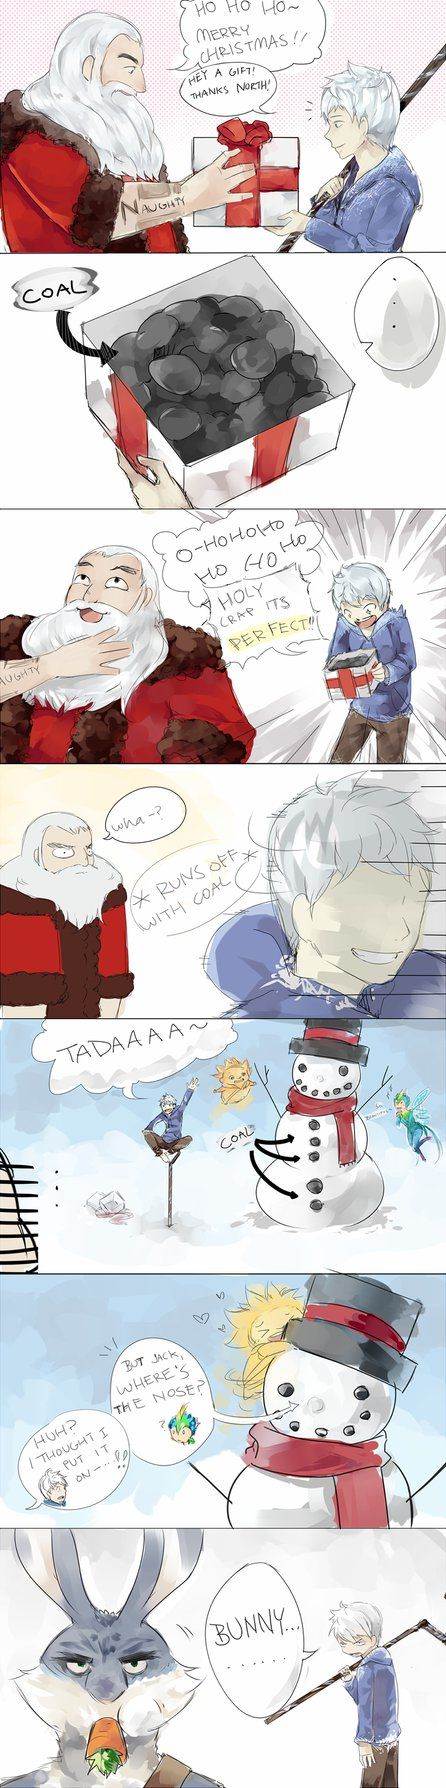 Merry Christmas! (ROTG) by IDK-kun on DeviantArt